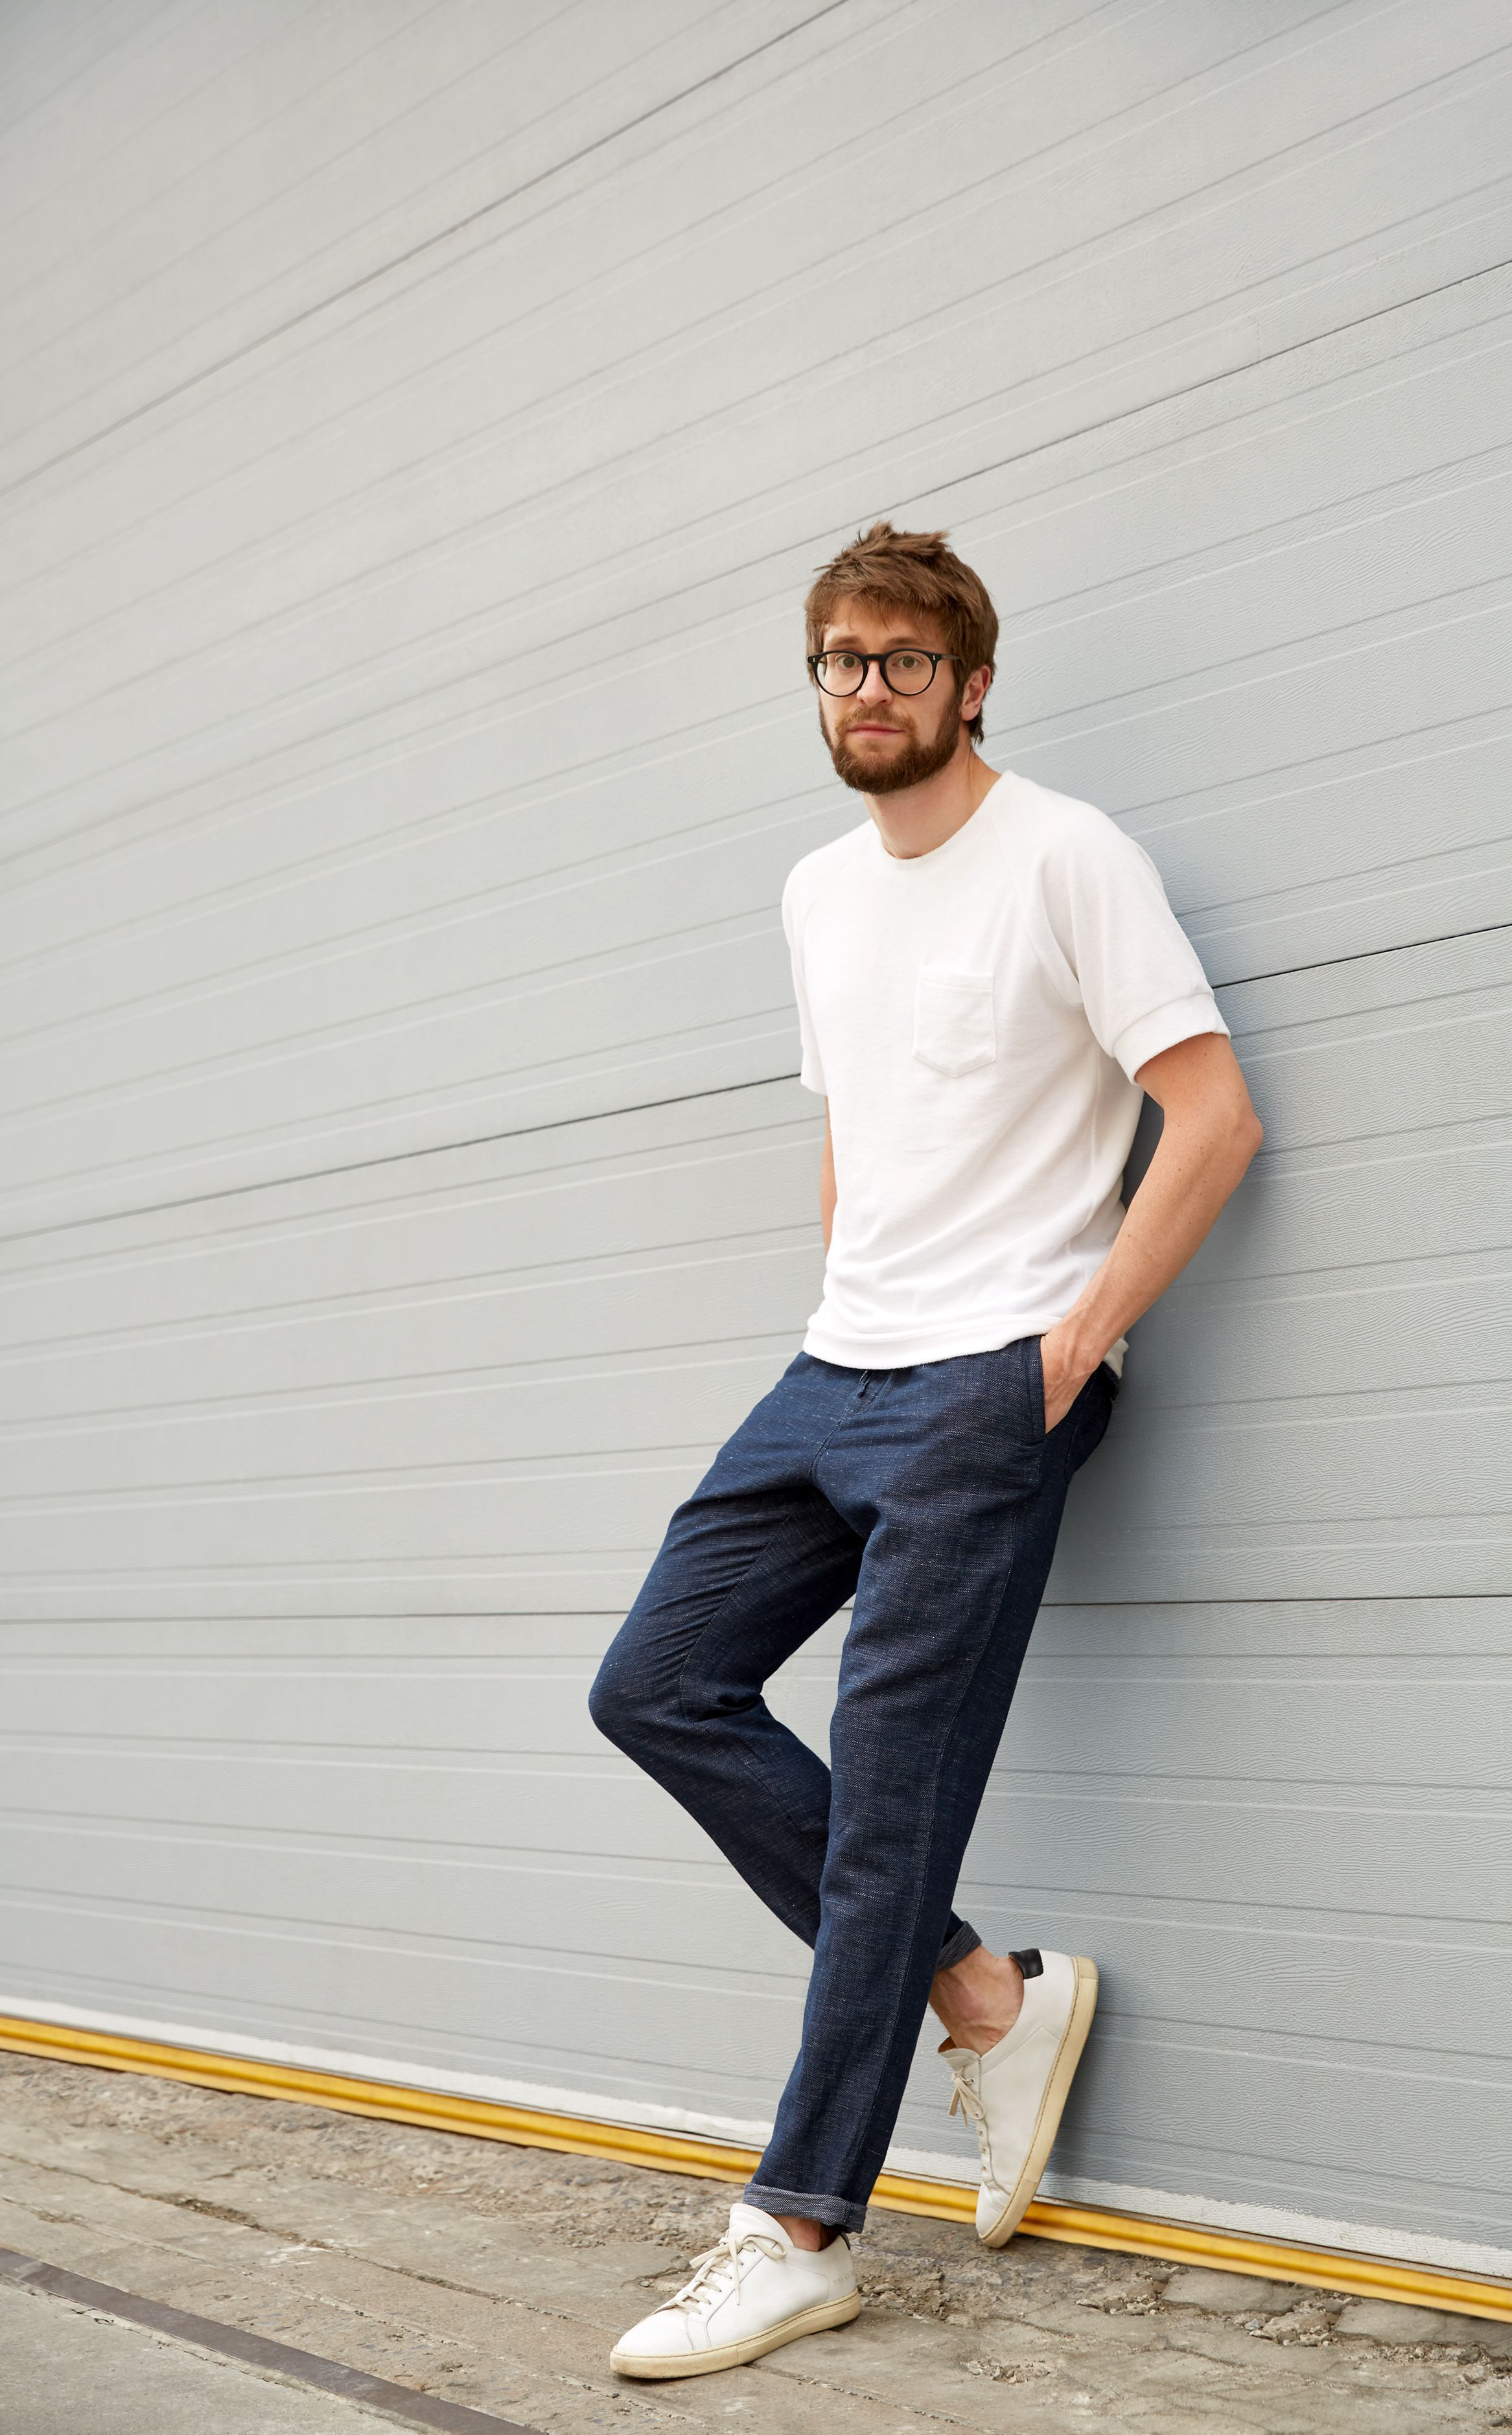 I M All About Simple Tonal And Detail Oriented Pieces That Reflect Scandinavian And To An Extent Tenis Branco Masculino Estilo Masculino Roupa Minimalista